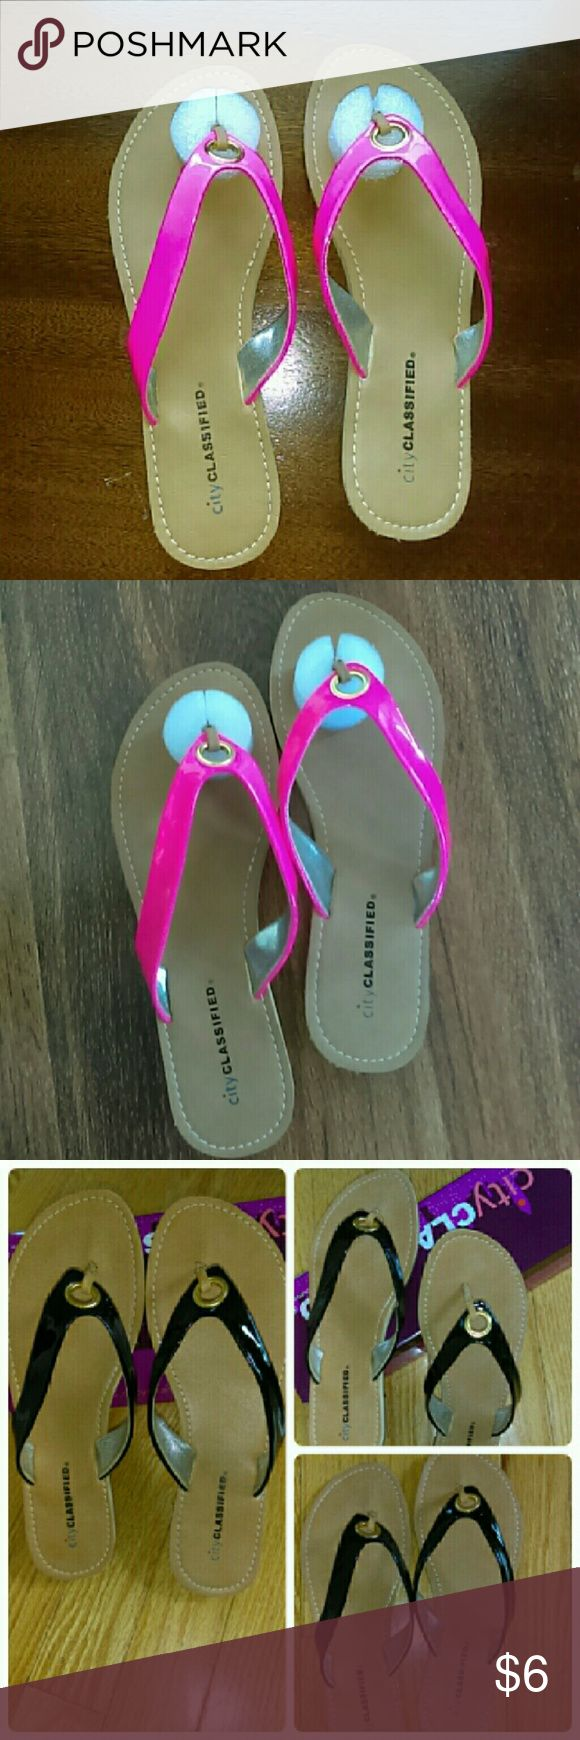 🎉 Sale🎉 Hot Pink Patent Leather Sandals 🎉sale $5 Clearance🎉    Cute and fun for summer look stylish while being comfortable with these patent leather sandals   Available in black and orange in separate listing Shoes Sandals